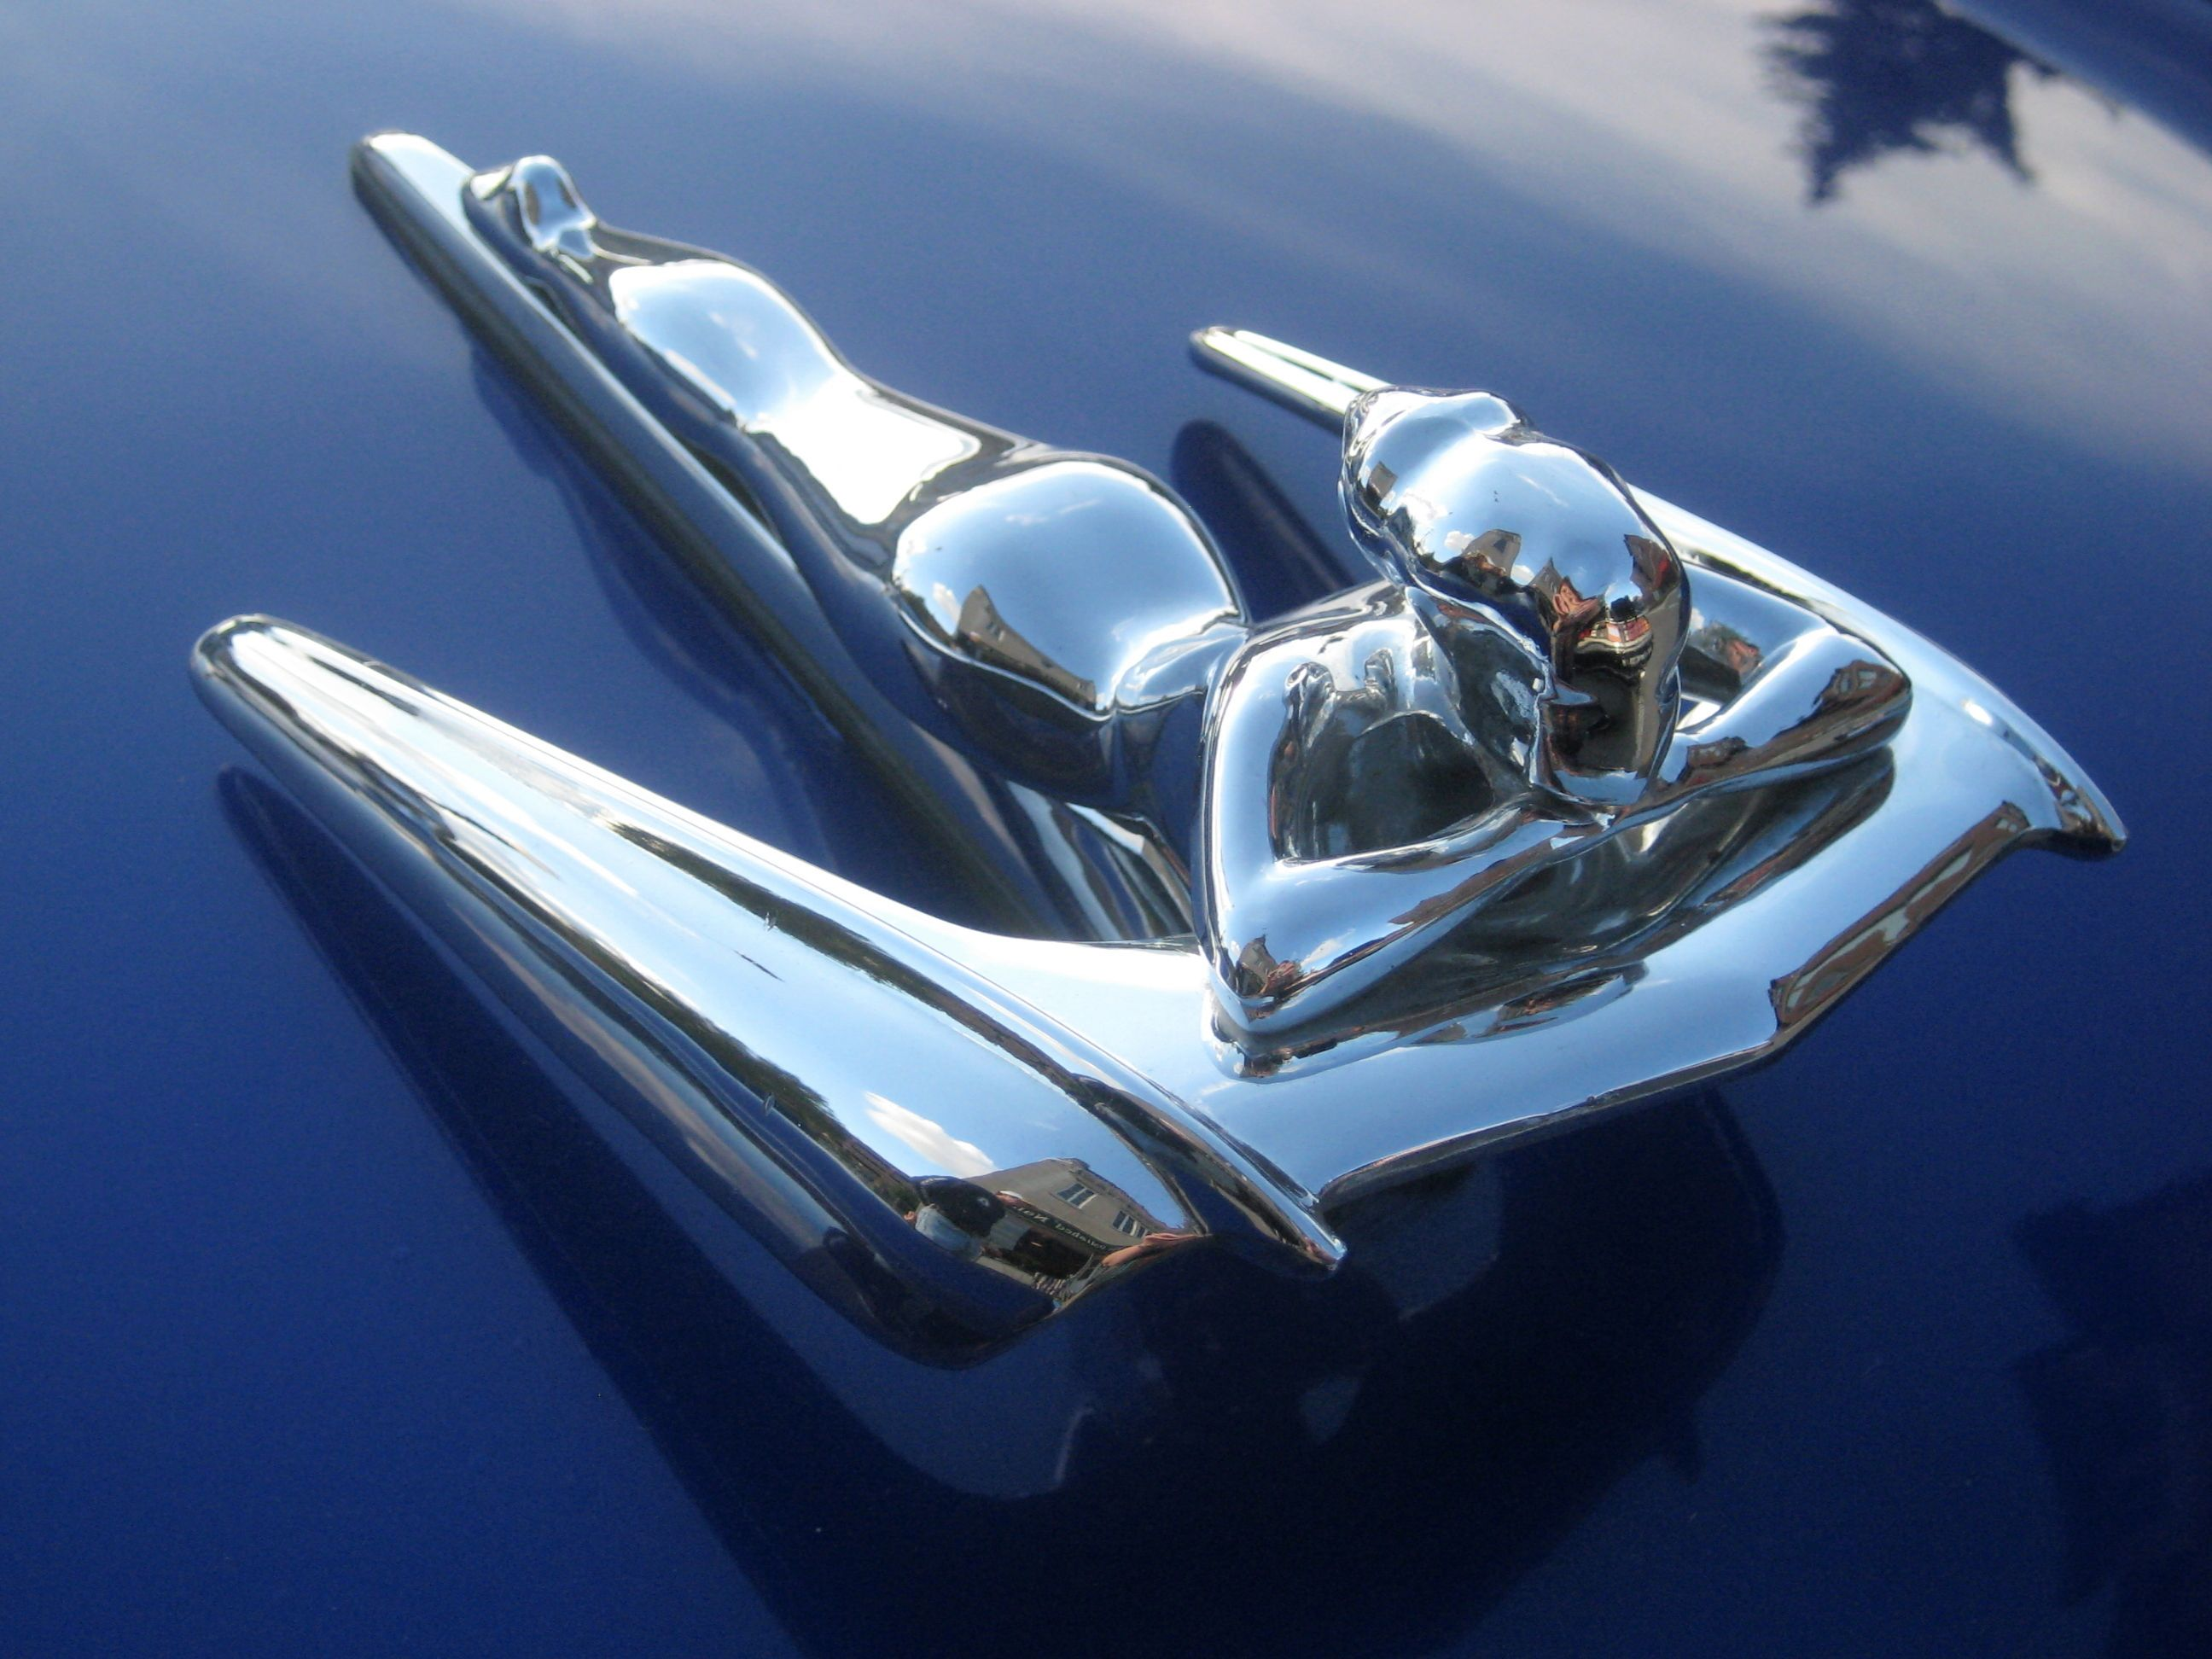 Pin On The Art Of Hood Ornaments